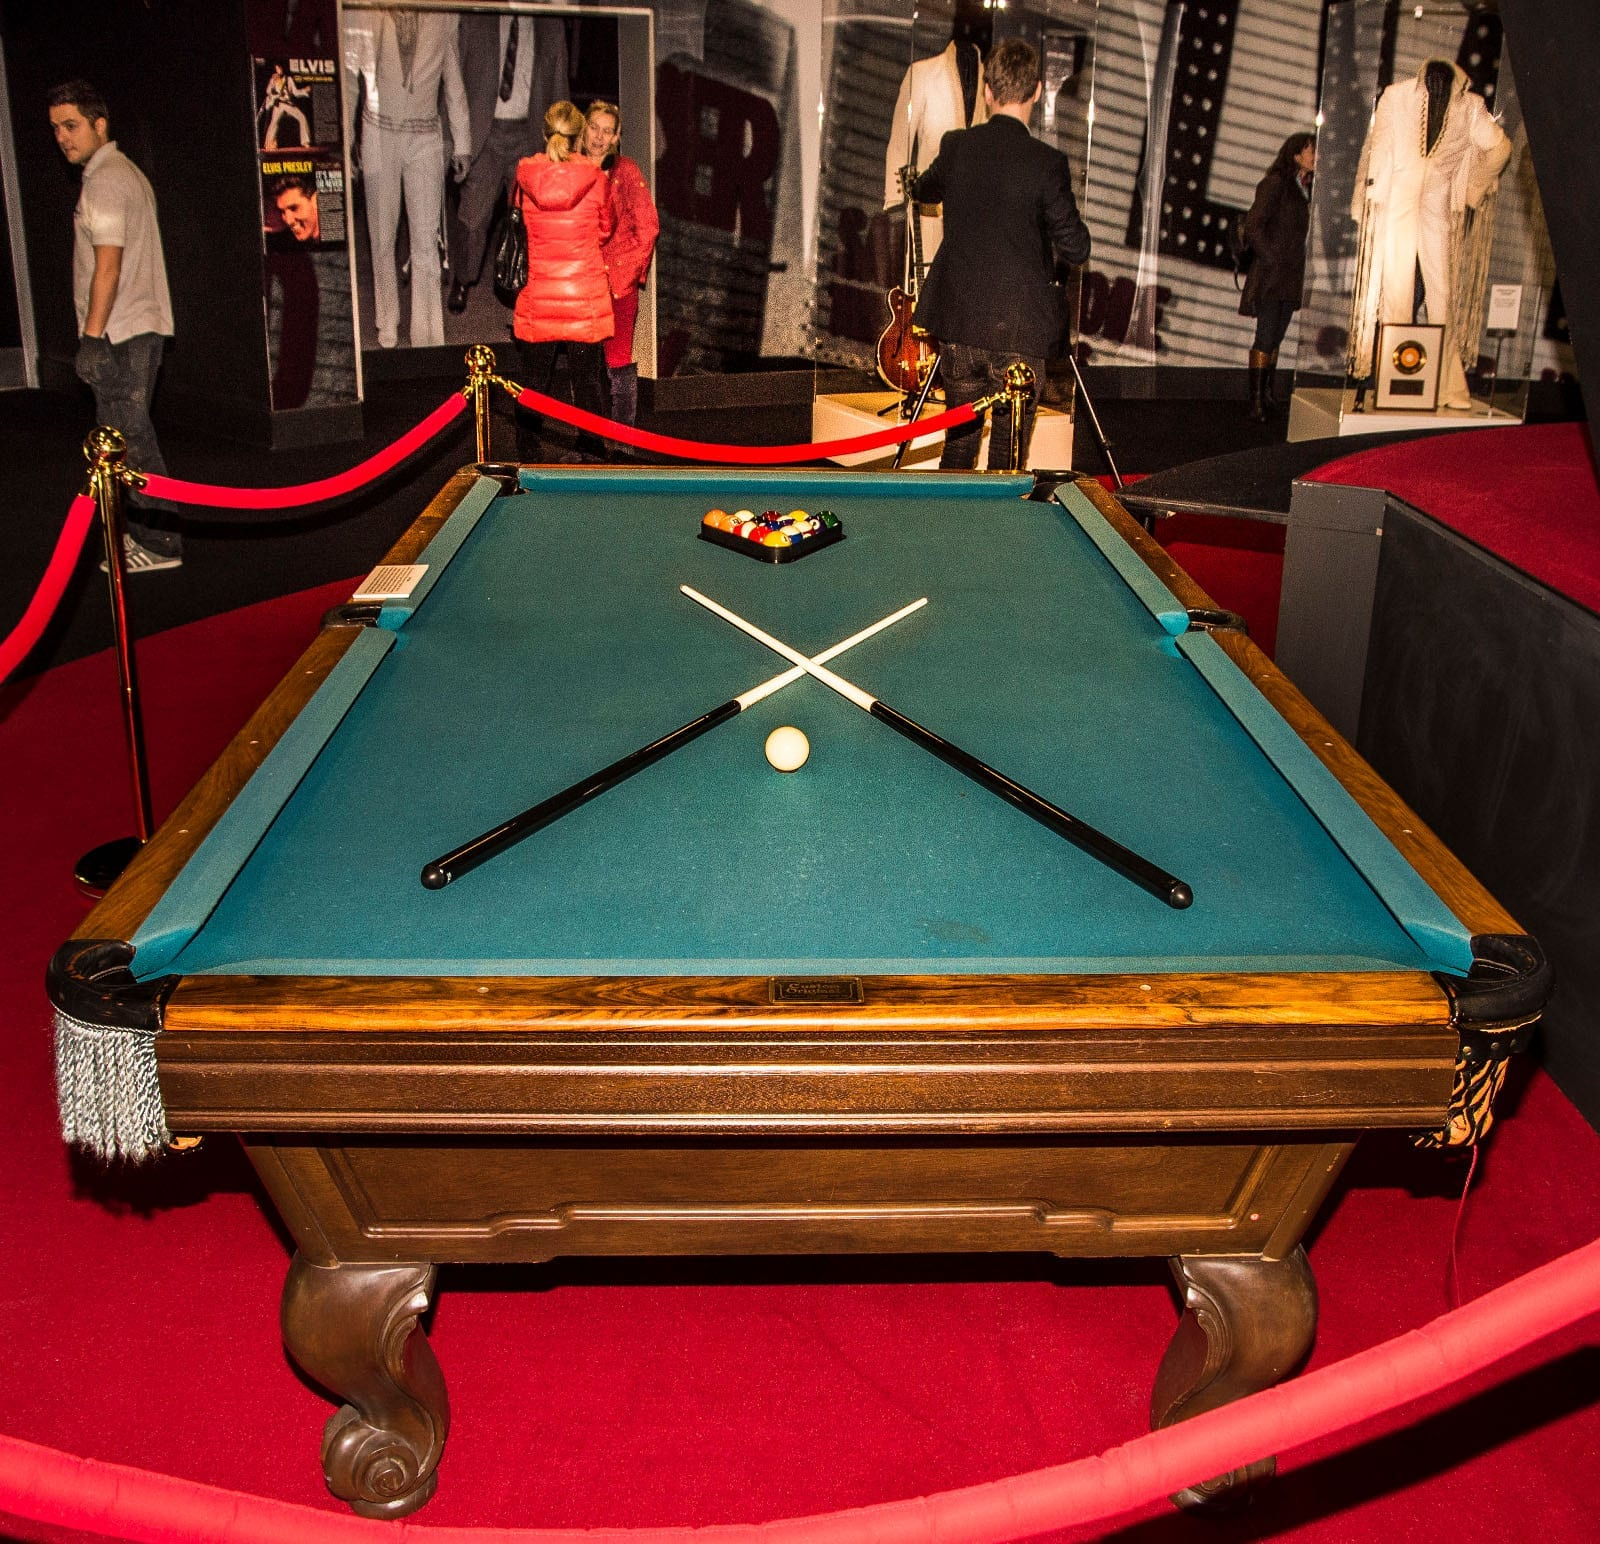 Pool table where Elvis and the Beatles played